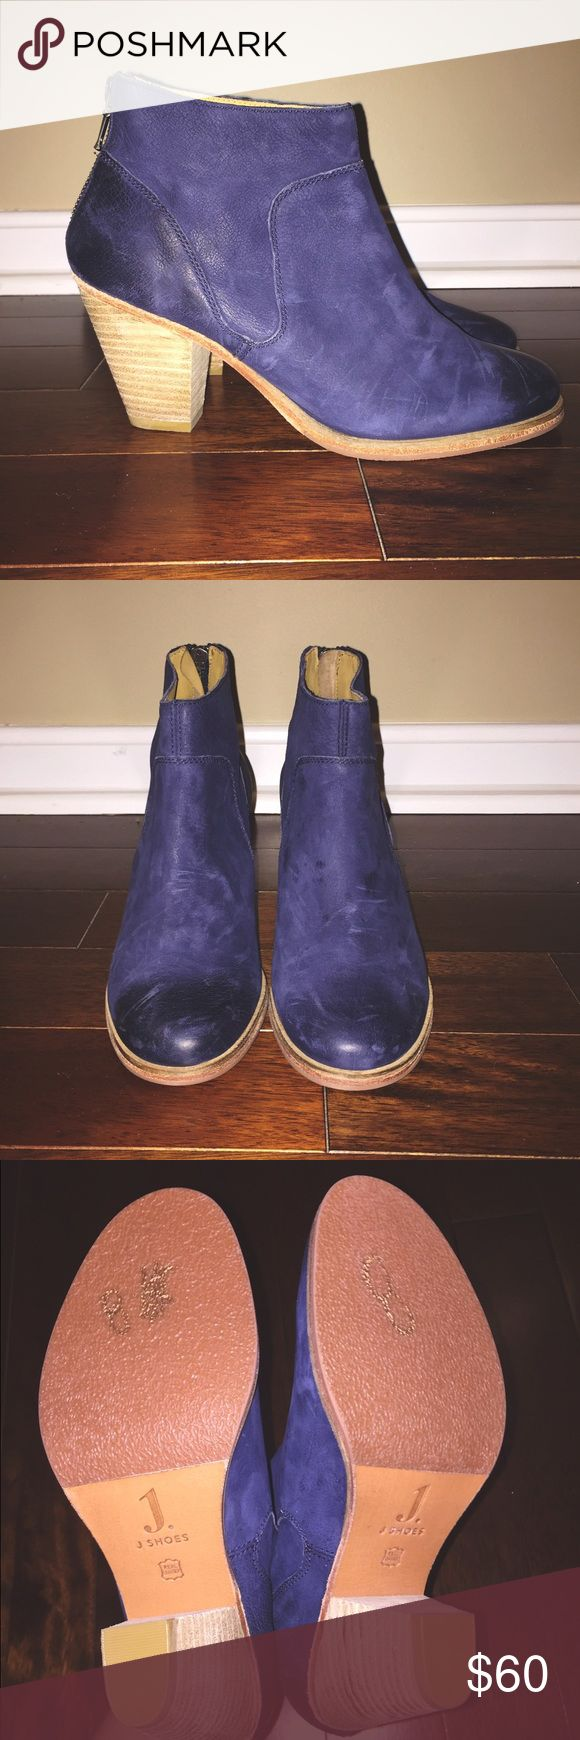 JSHOES Navy Heeled Bootie JSHOES Navy Heeled Bootie Never Worn Great Condition Size 8 Price Negotiable Reasonable Offers Only JSHOES Shoes Ankle Boots & Booties